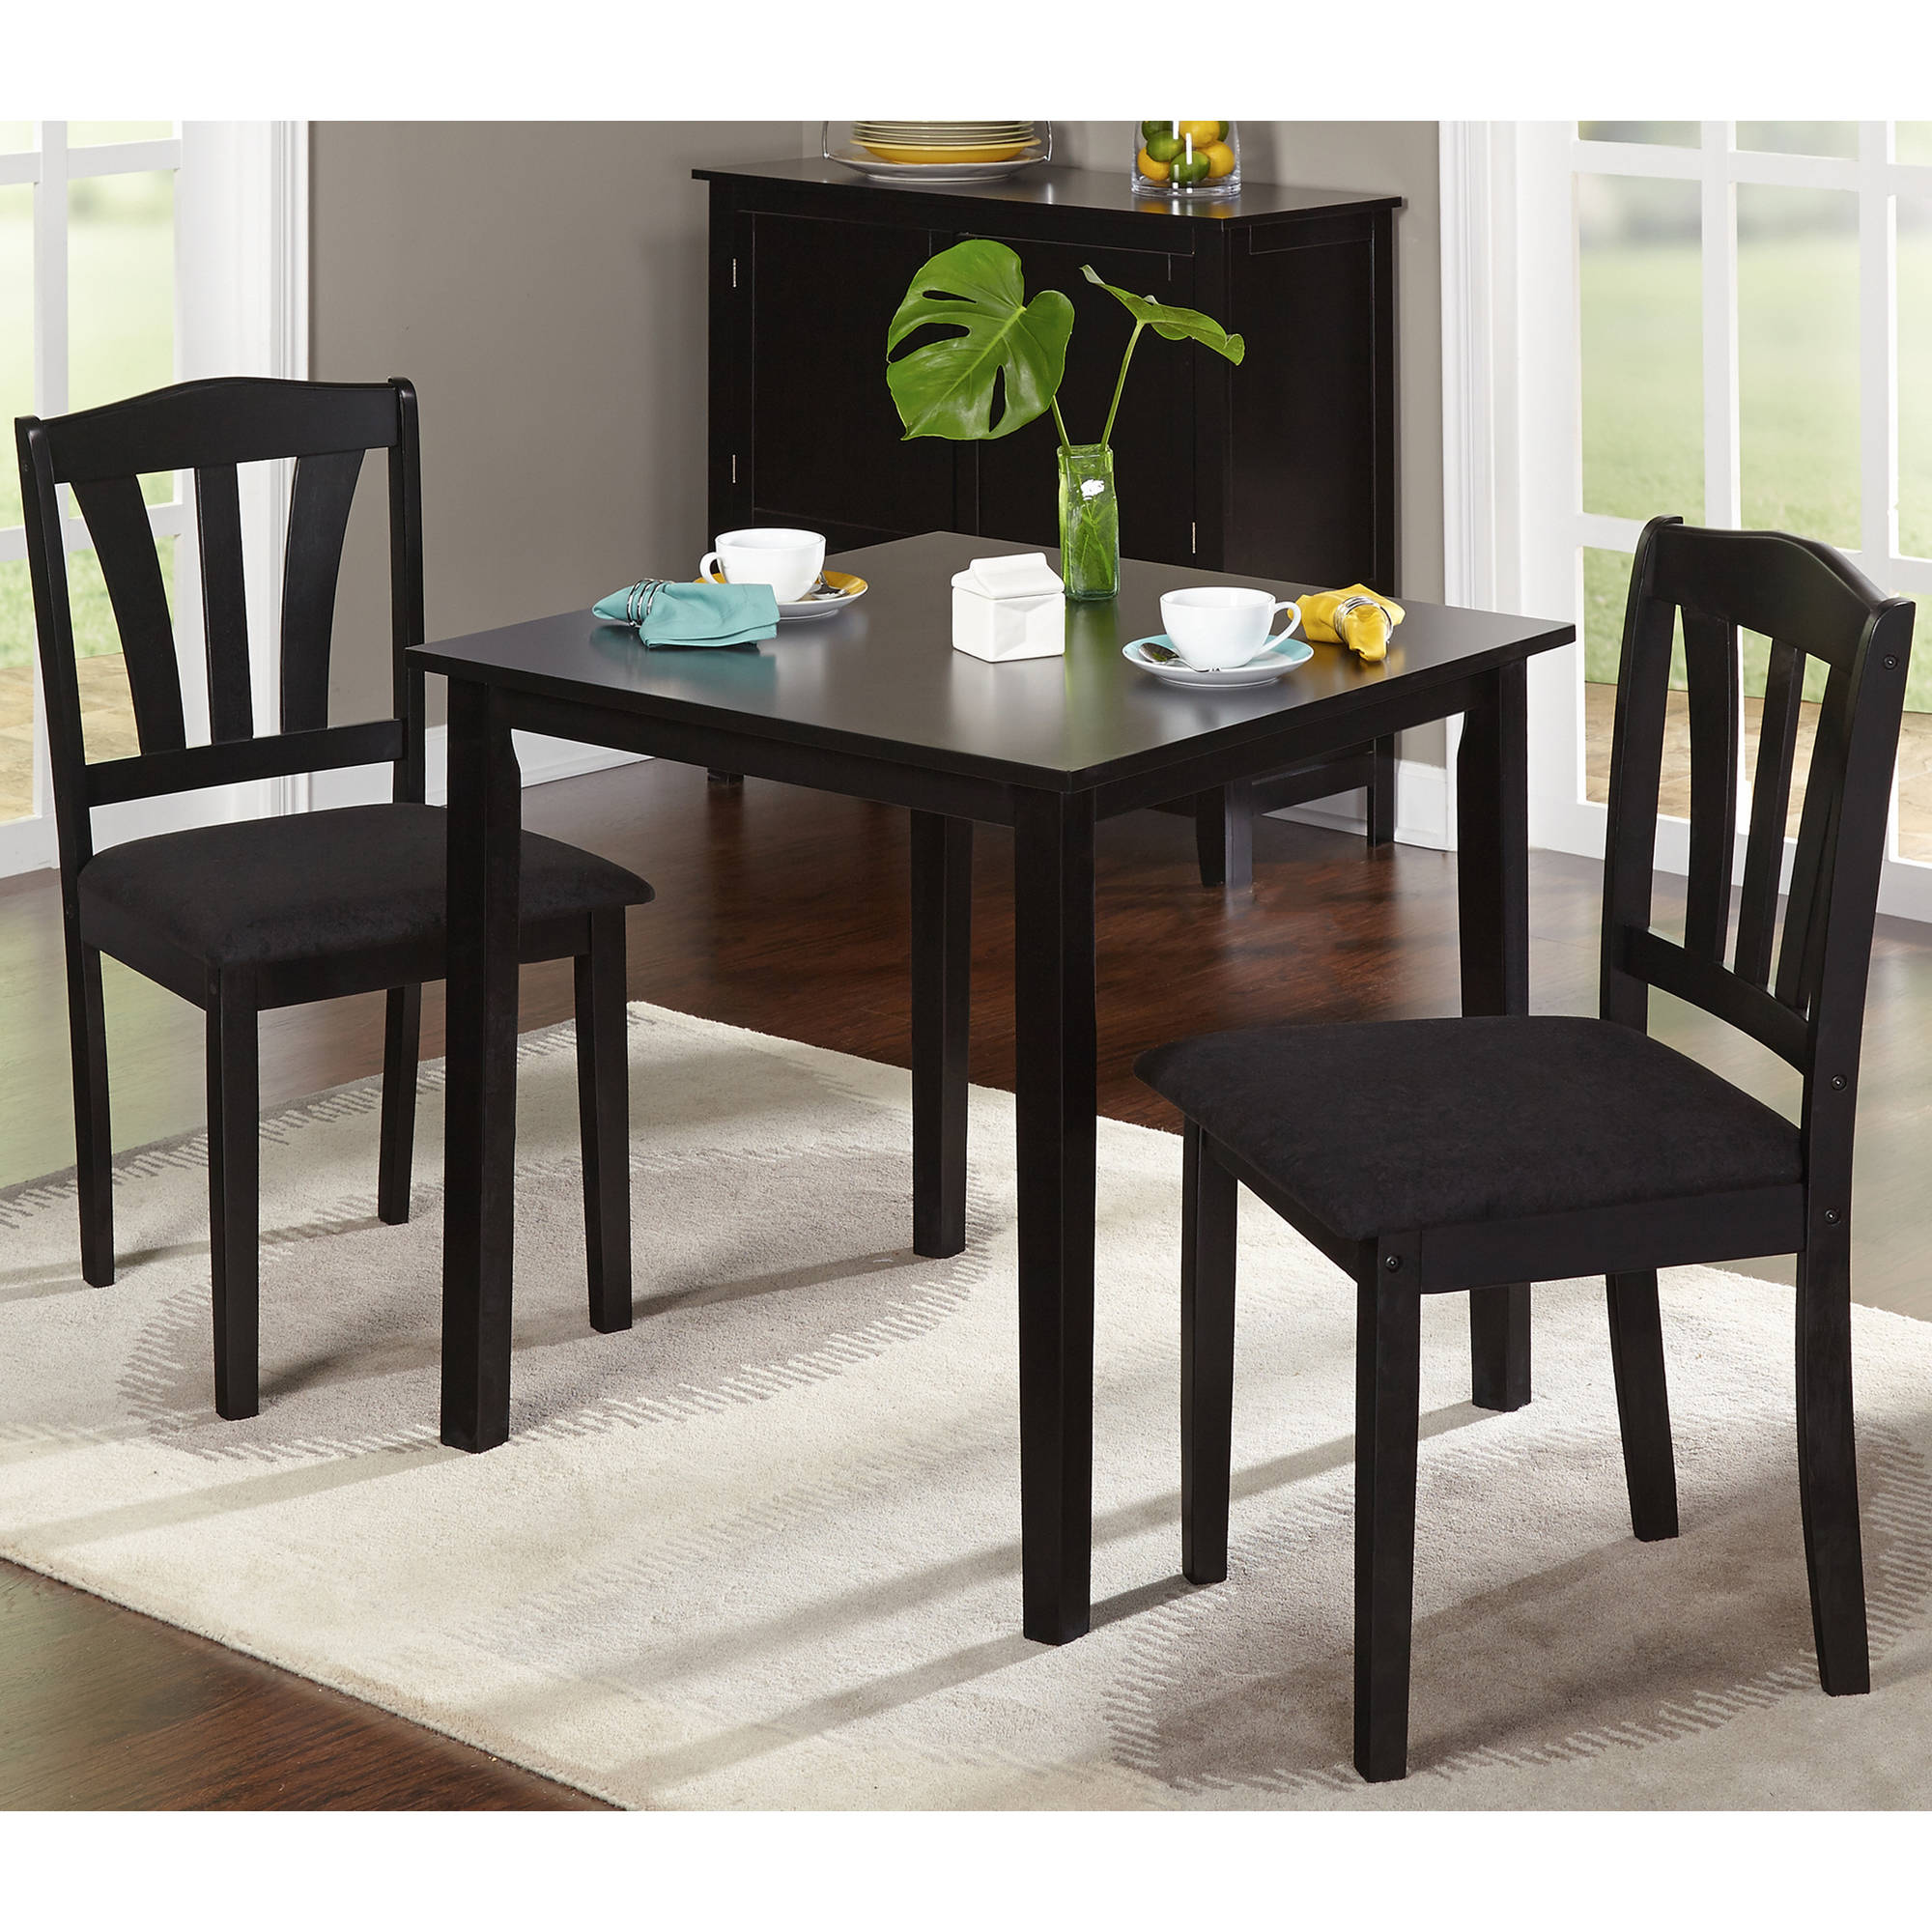 Metropolitan 3 Piece Dining Set, Multiple Finishes